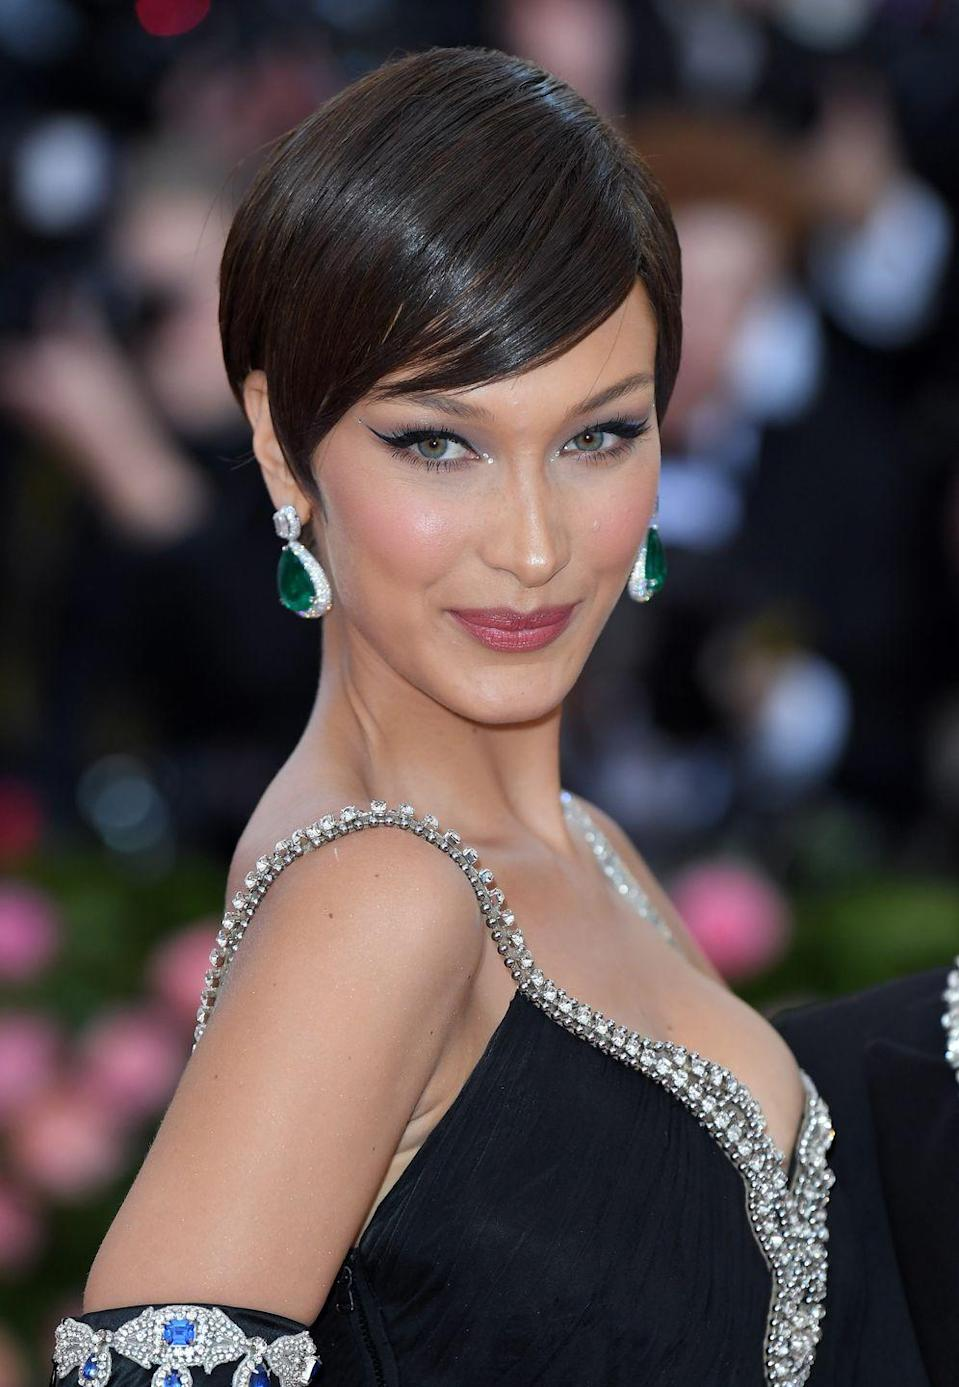 <p>Bella Hadid's Moschino Met Gala look wasn't complete without a side-parted and ultra-glossy pixie cut (it was a very well done wig).</p>